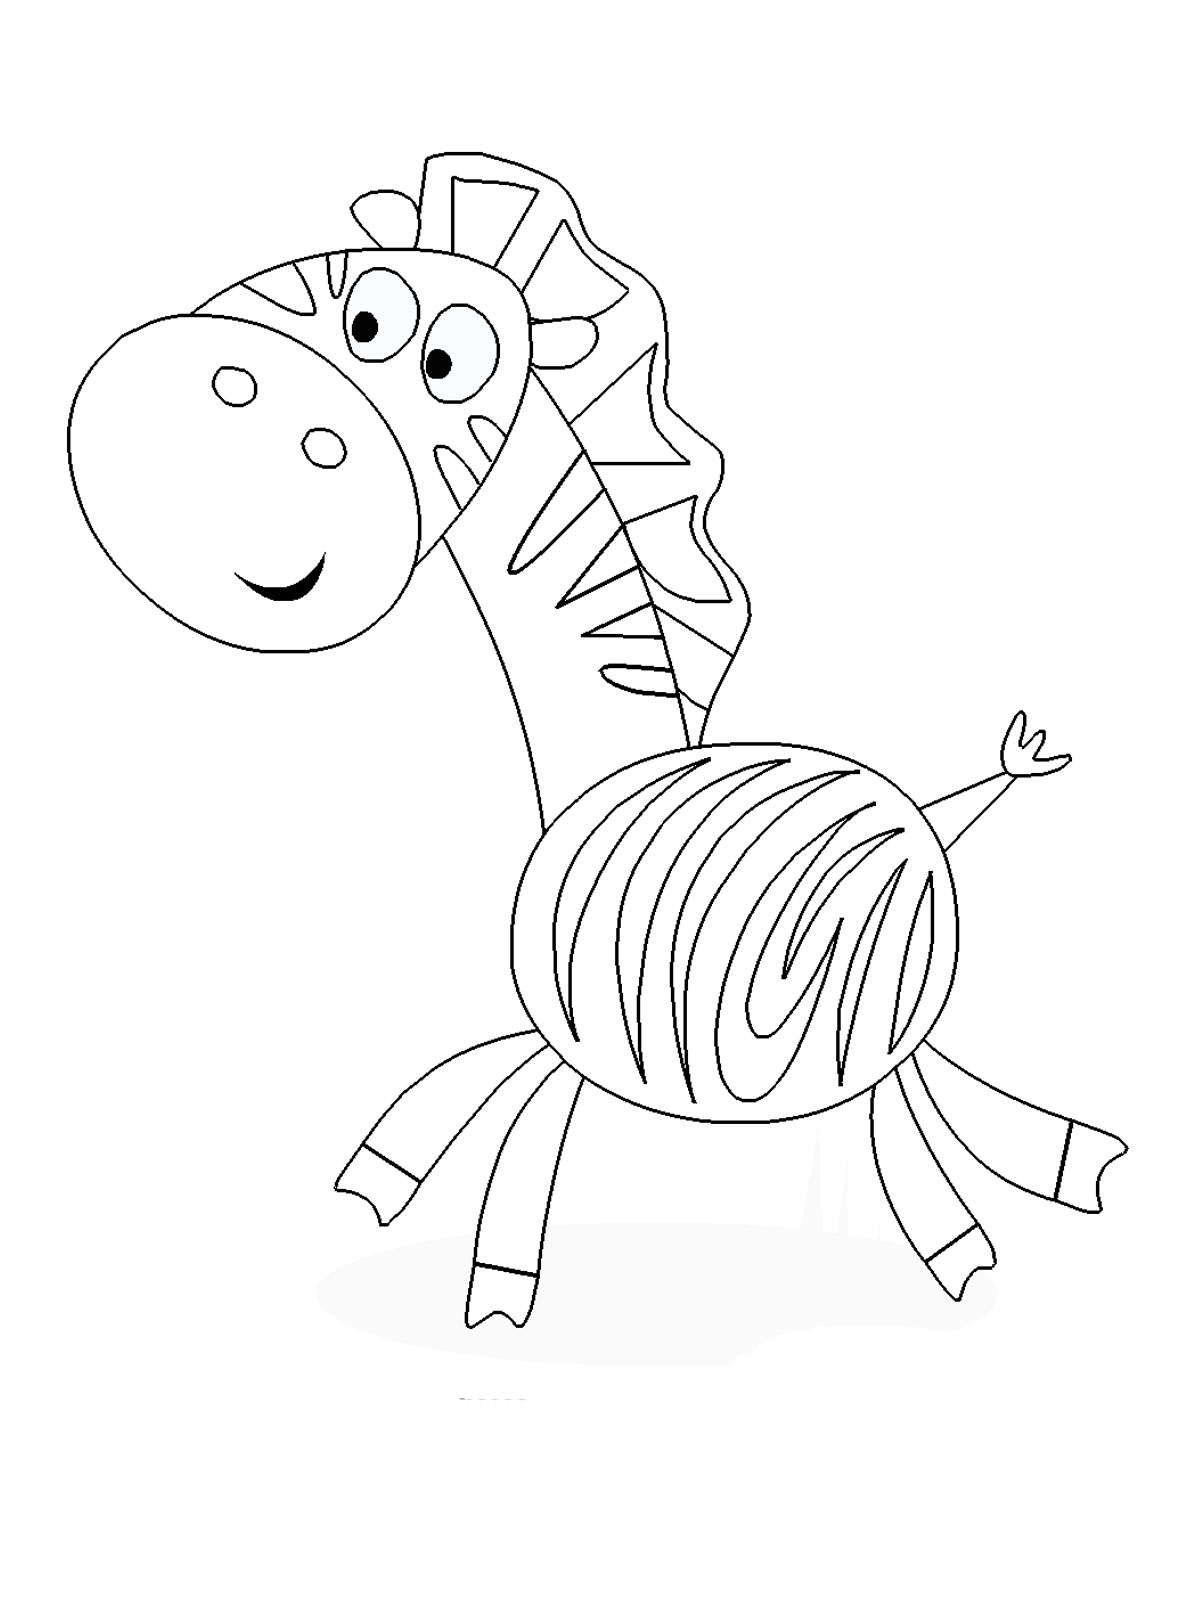 coloring printouts for kids free printable nickelodeon coloring pages for kids coloring printouts for kids